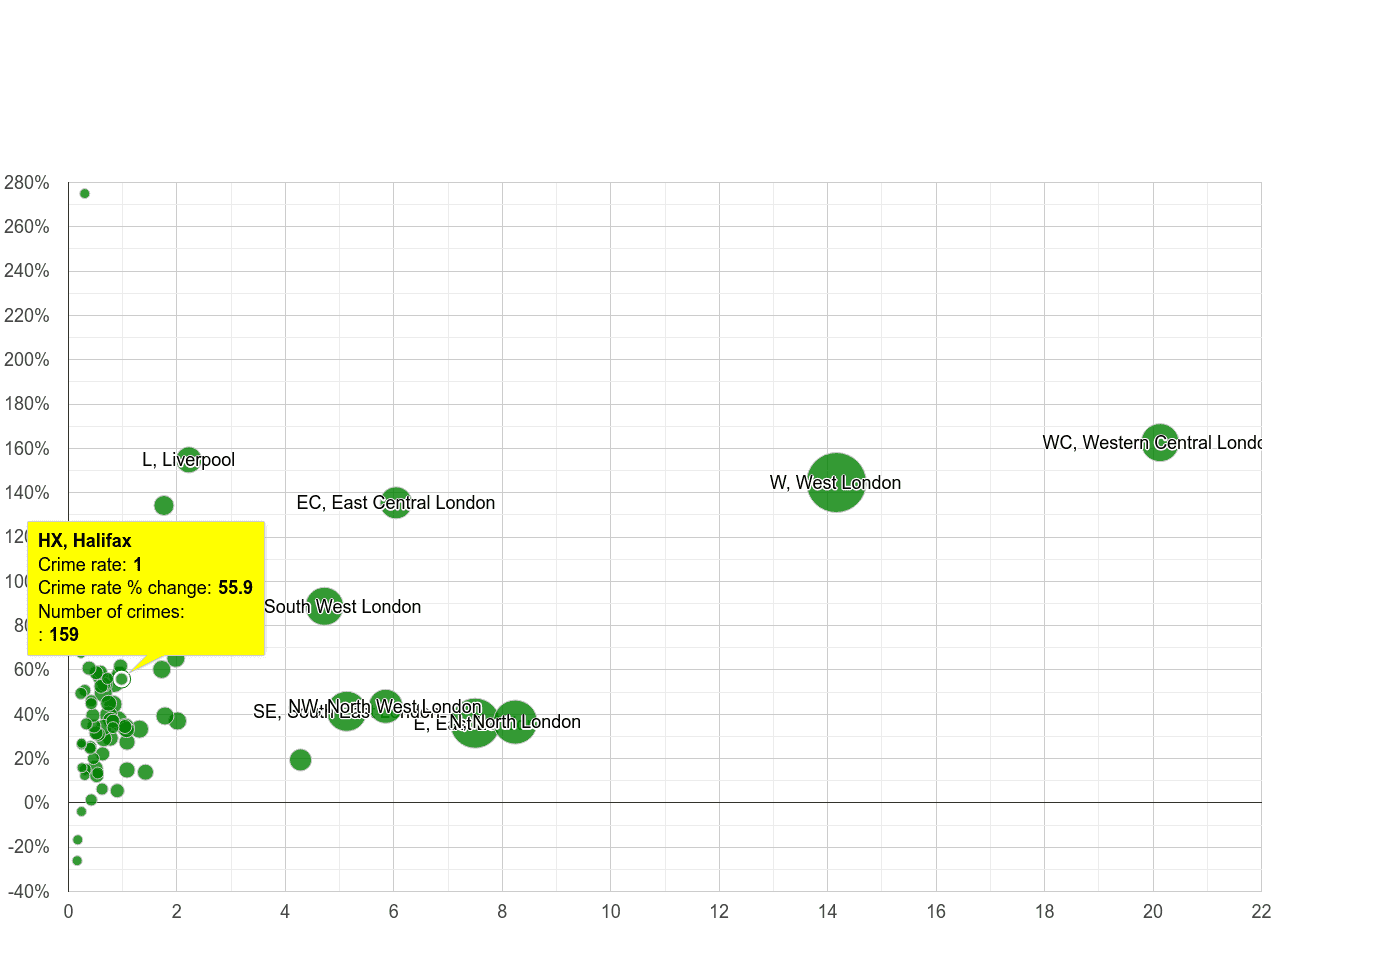 Halifax theft from the person crime rate compared to other areas